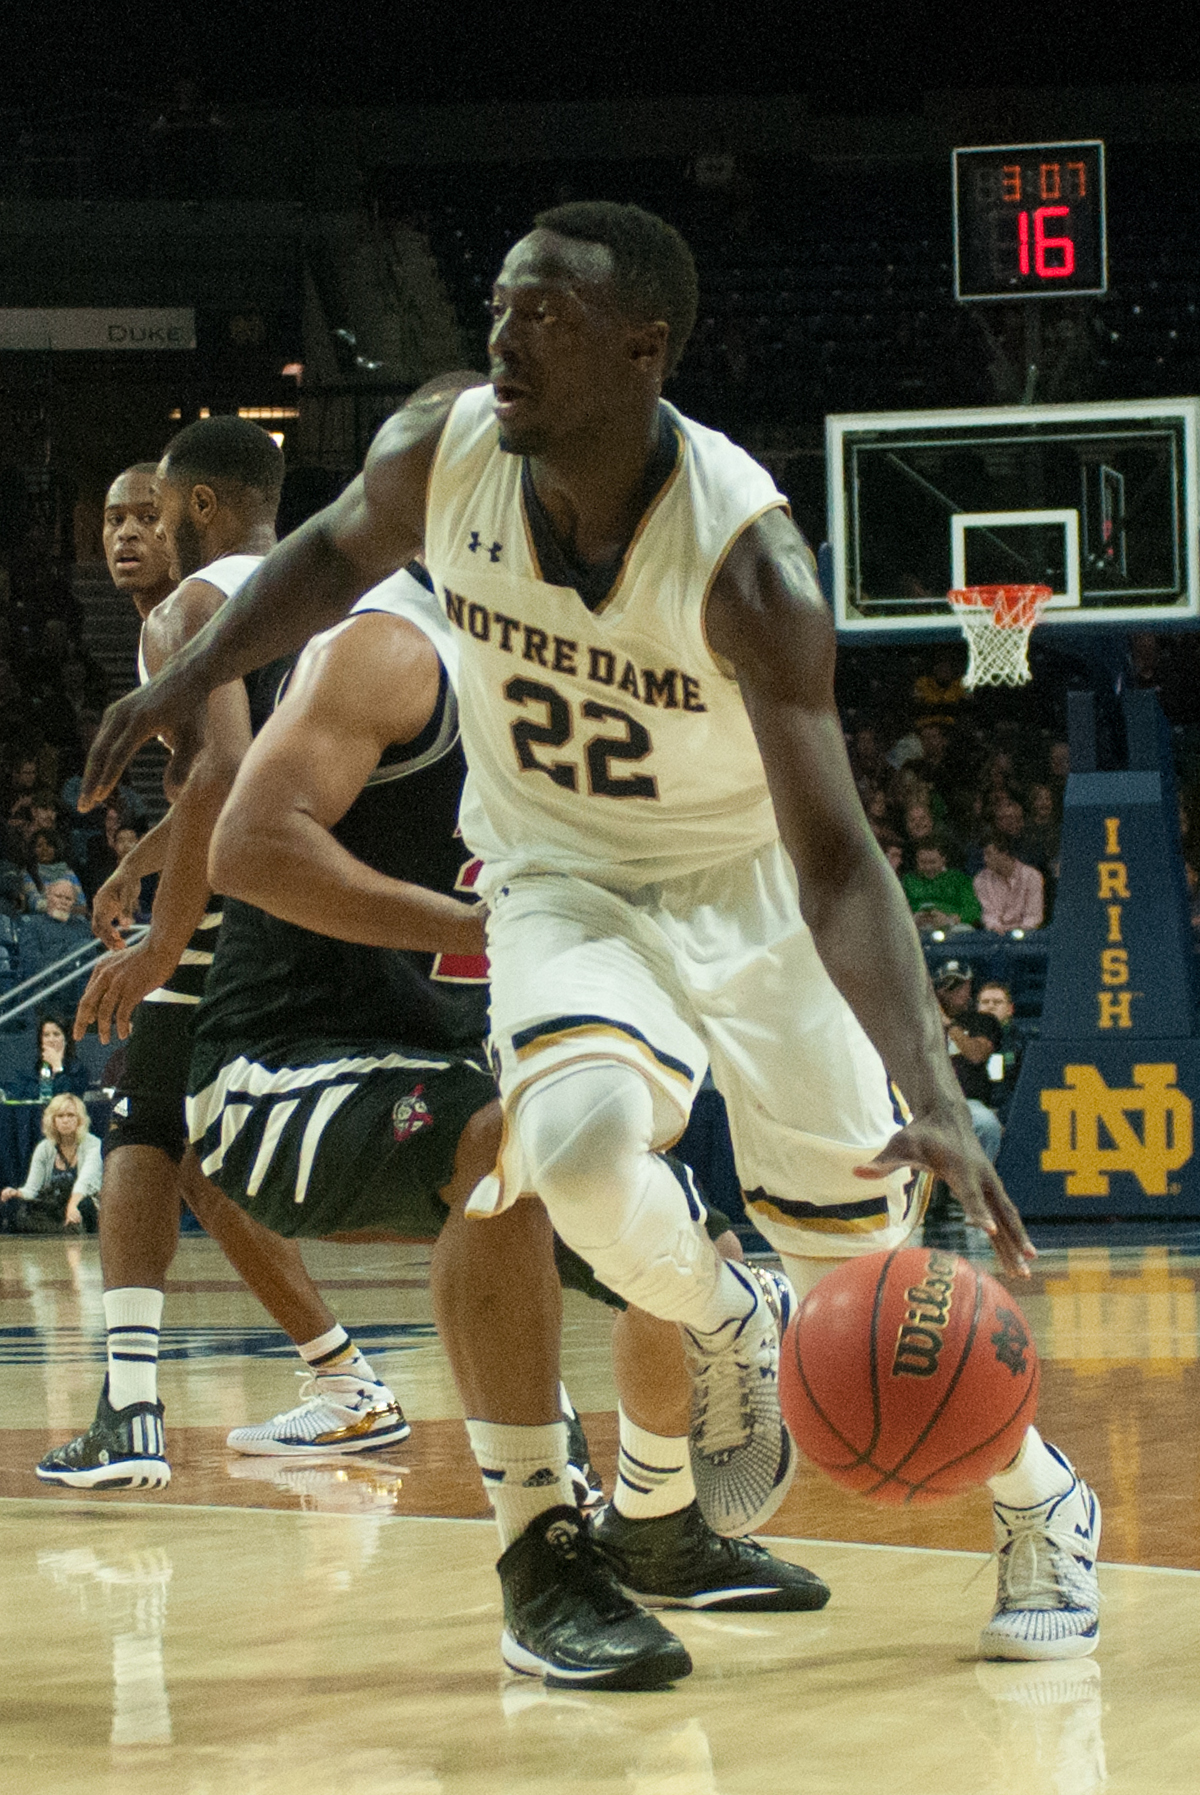 Irish senior guard Jerian Grant dribbles towards the basket during Notre Dame's 82-59 exhibition win against Lewis on Friday.